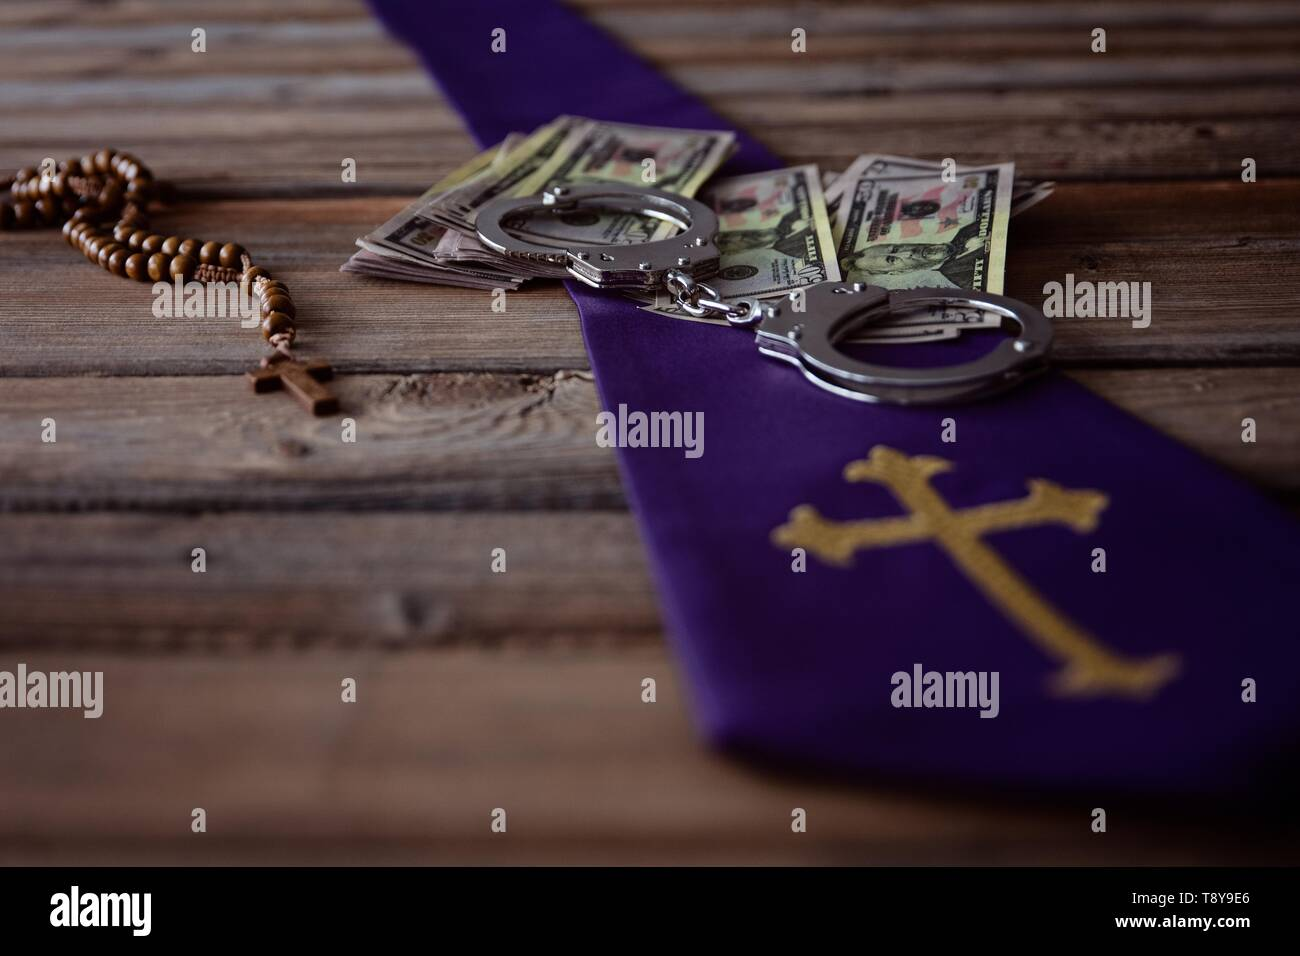 Banknotes and catholic church symbols. Church and money - Stock Image